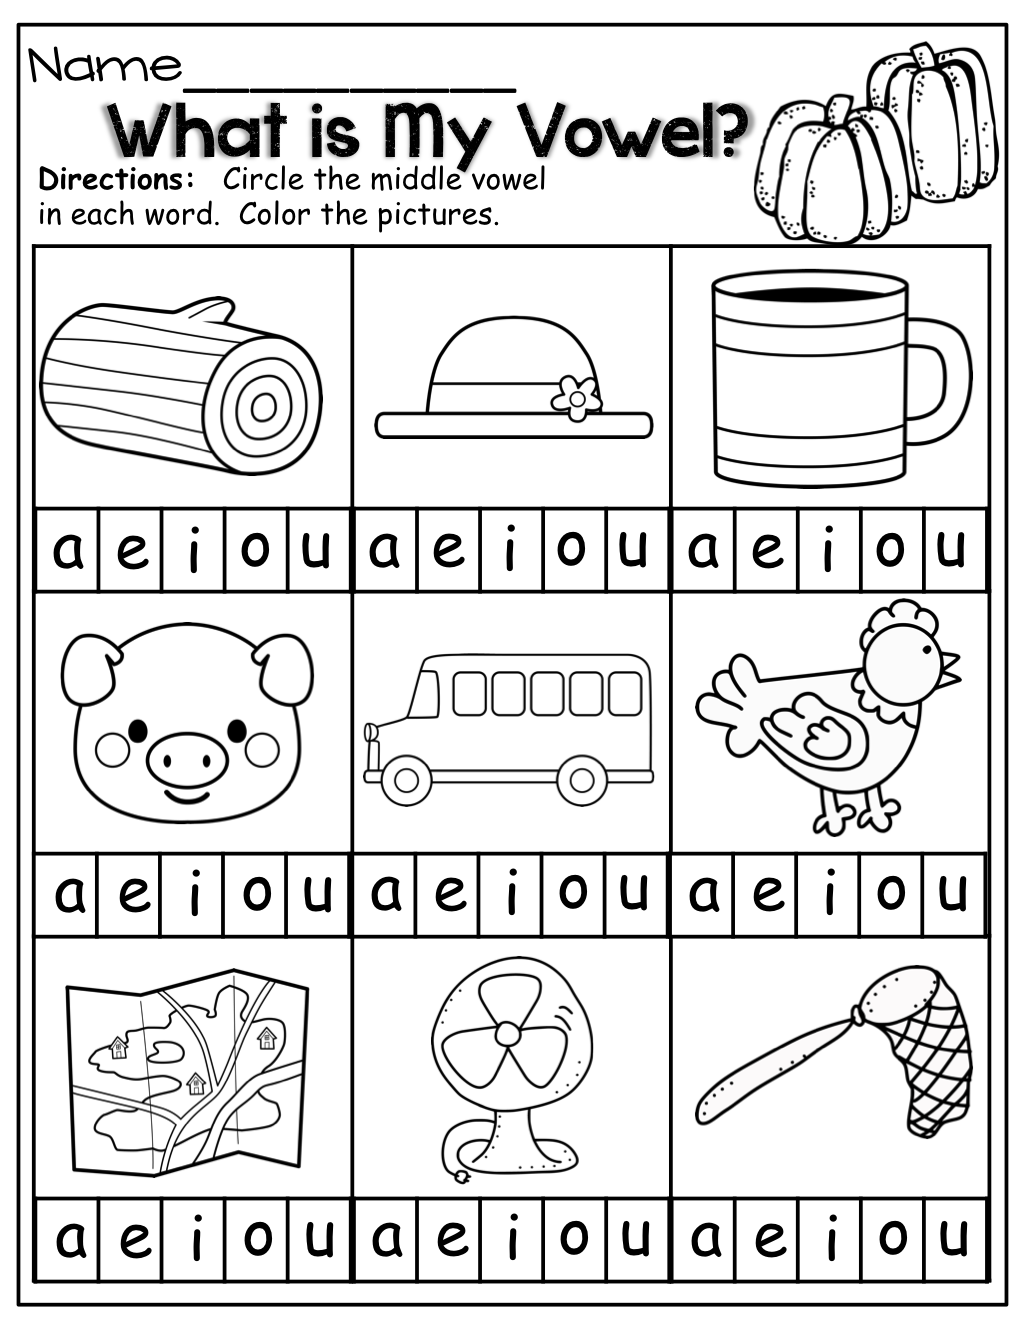 worksheet Kindergarten Cvc Words Worksheets costs money and is meant for kinder but would be great find the missing vowel in each cvc word